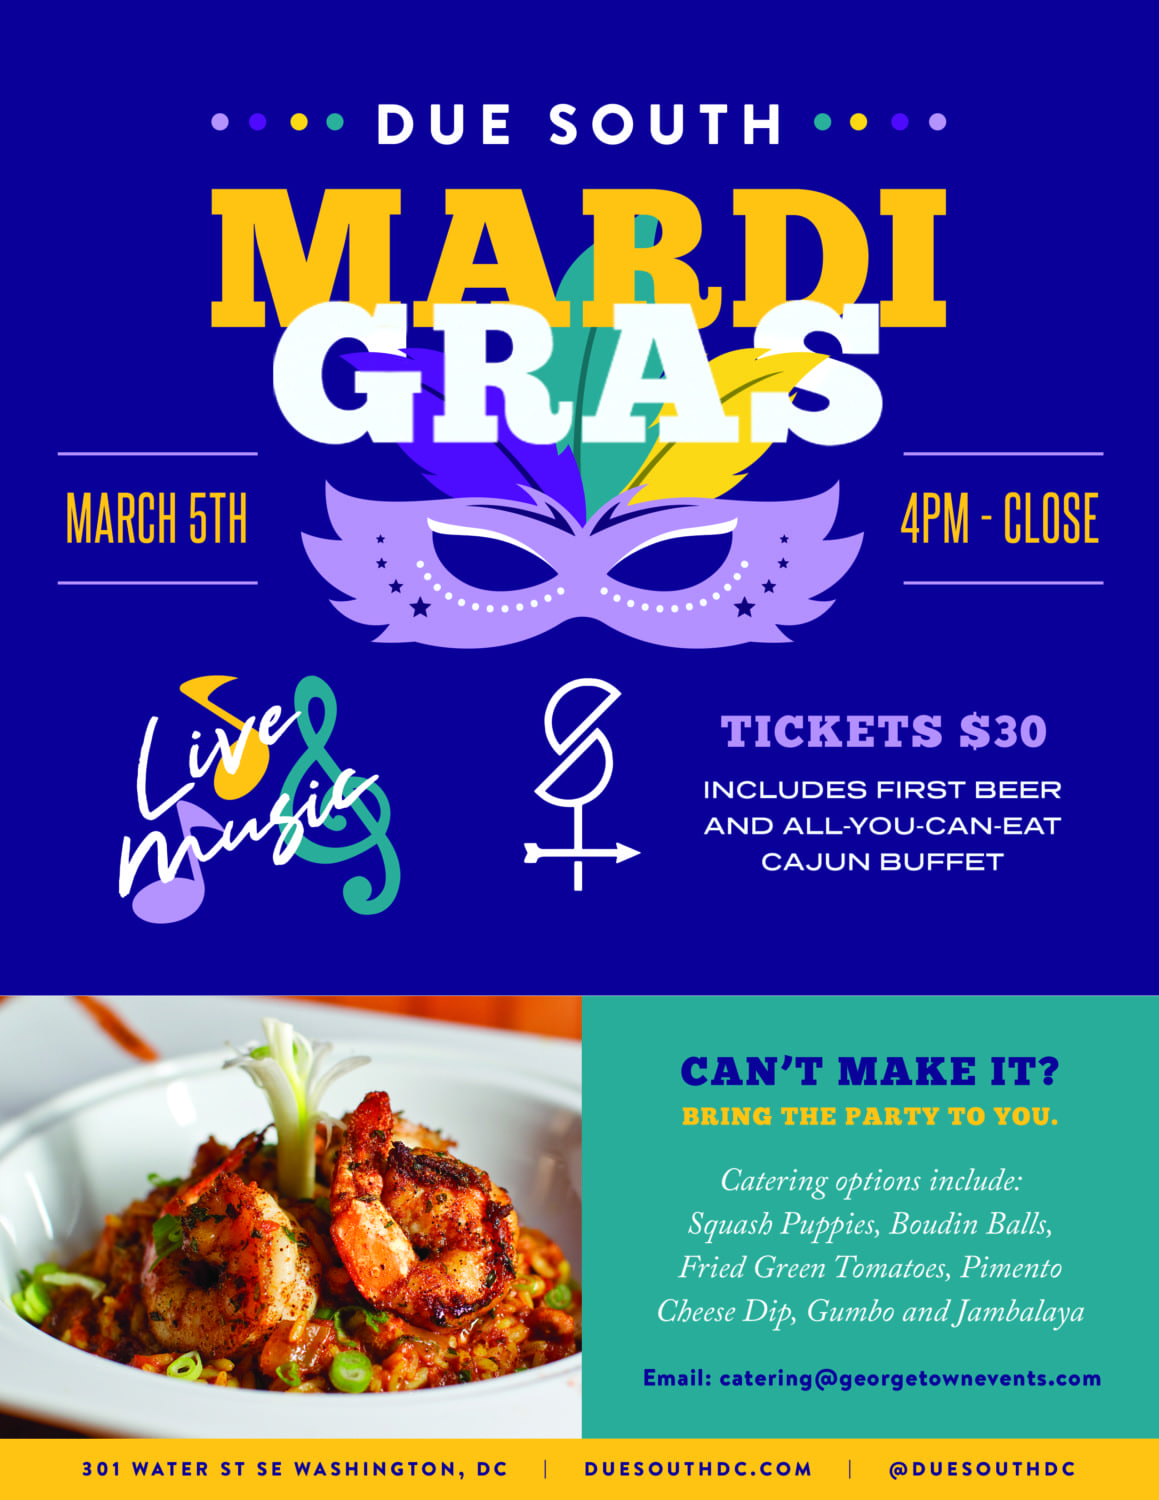 Flyer for Due South's Mardi Gras event with live music, buffet, and live music